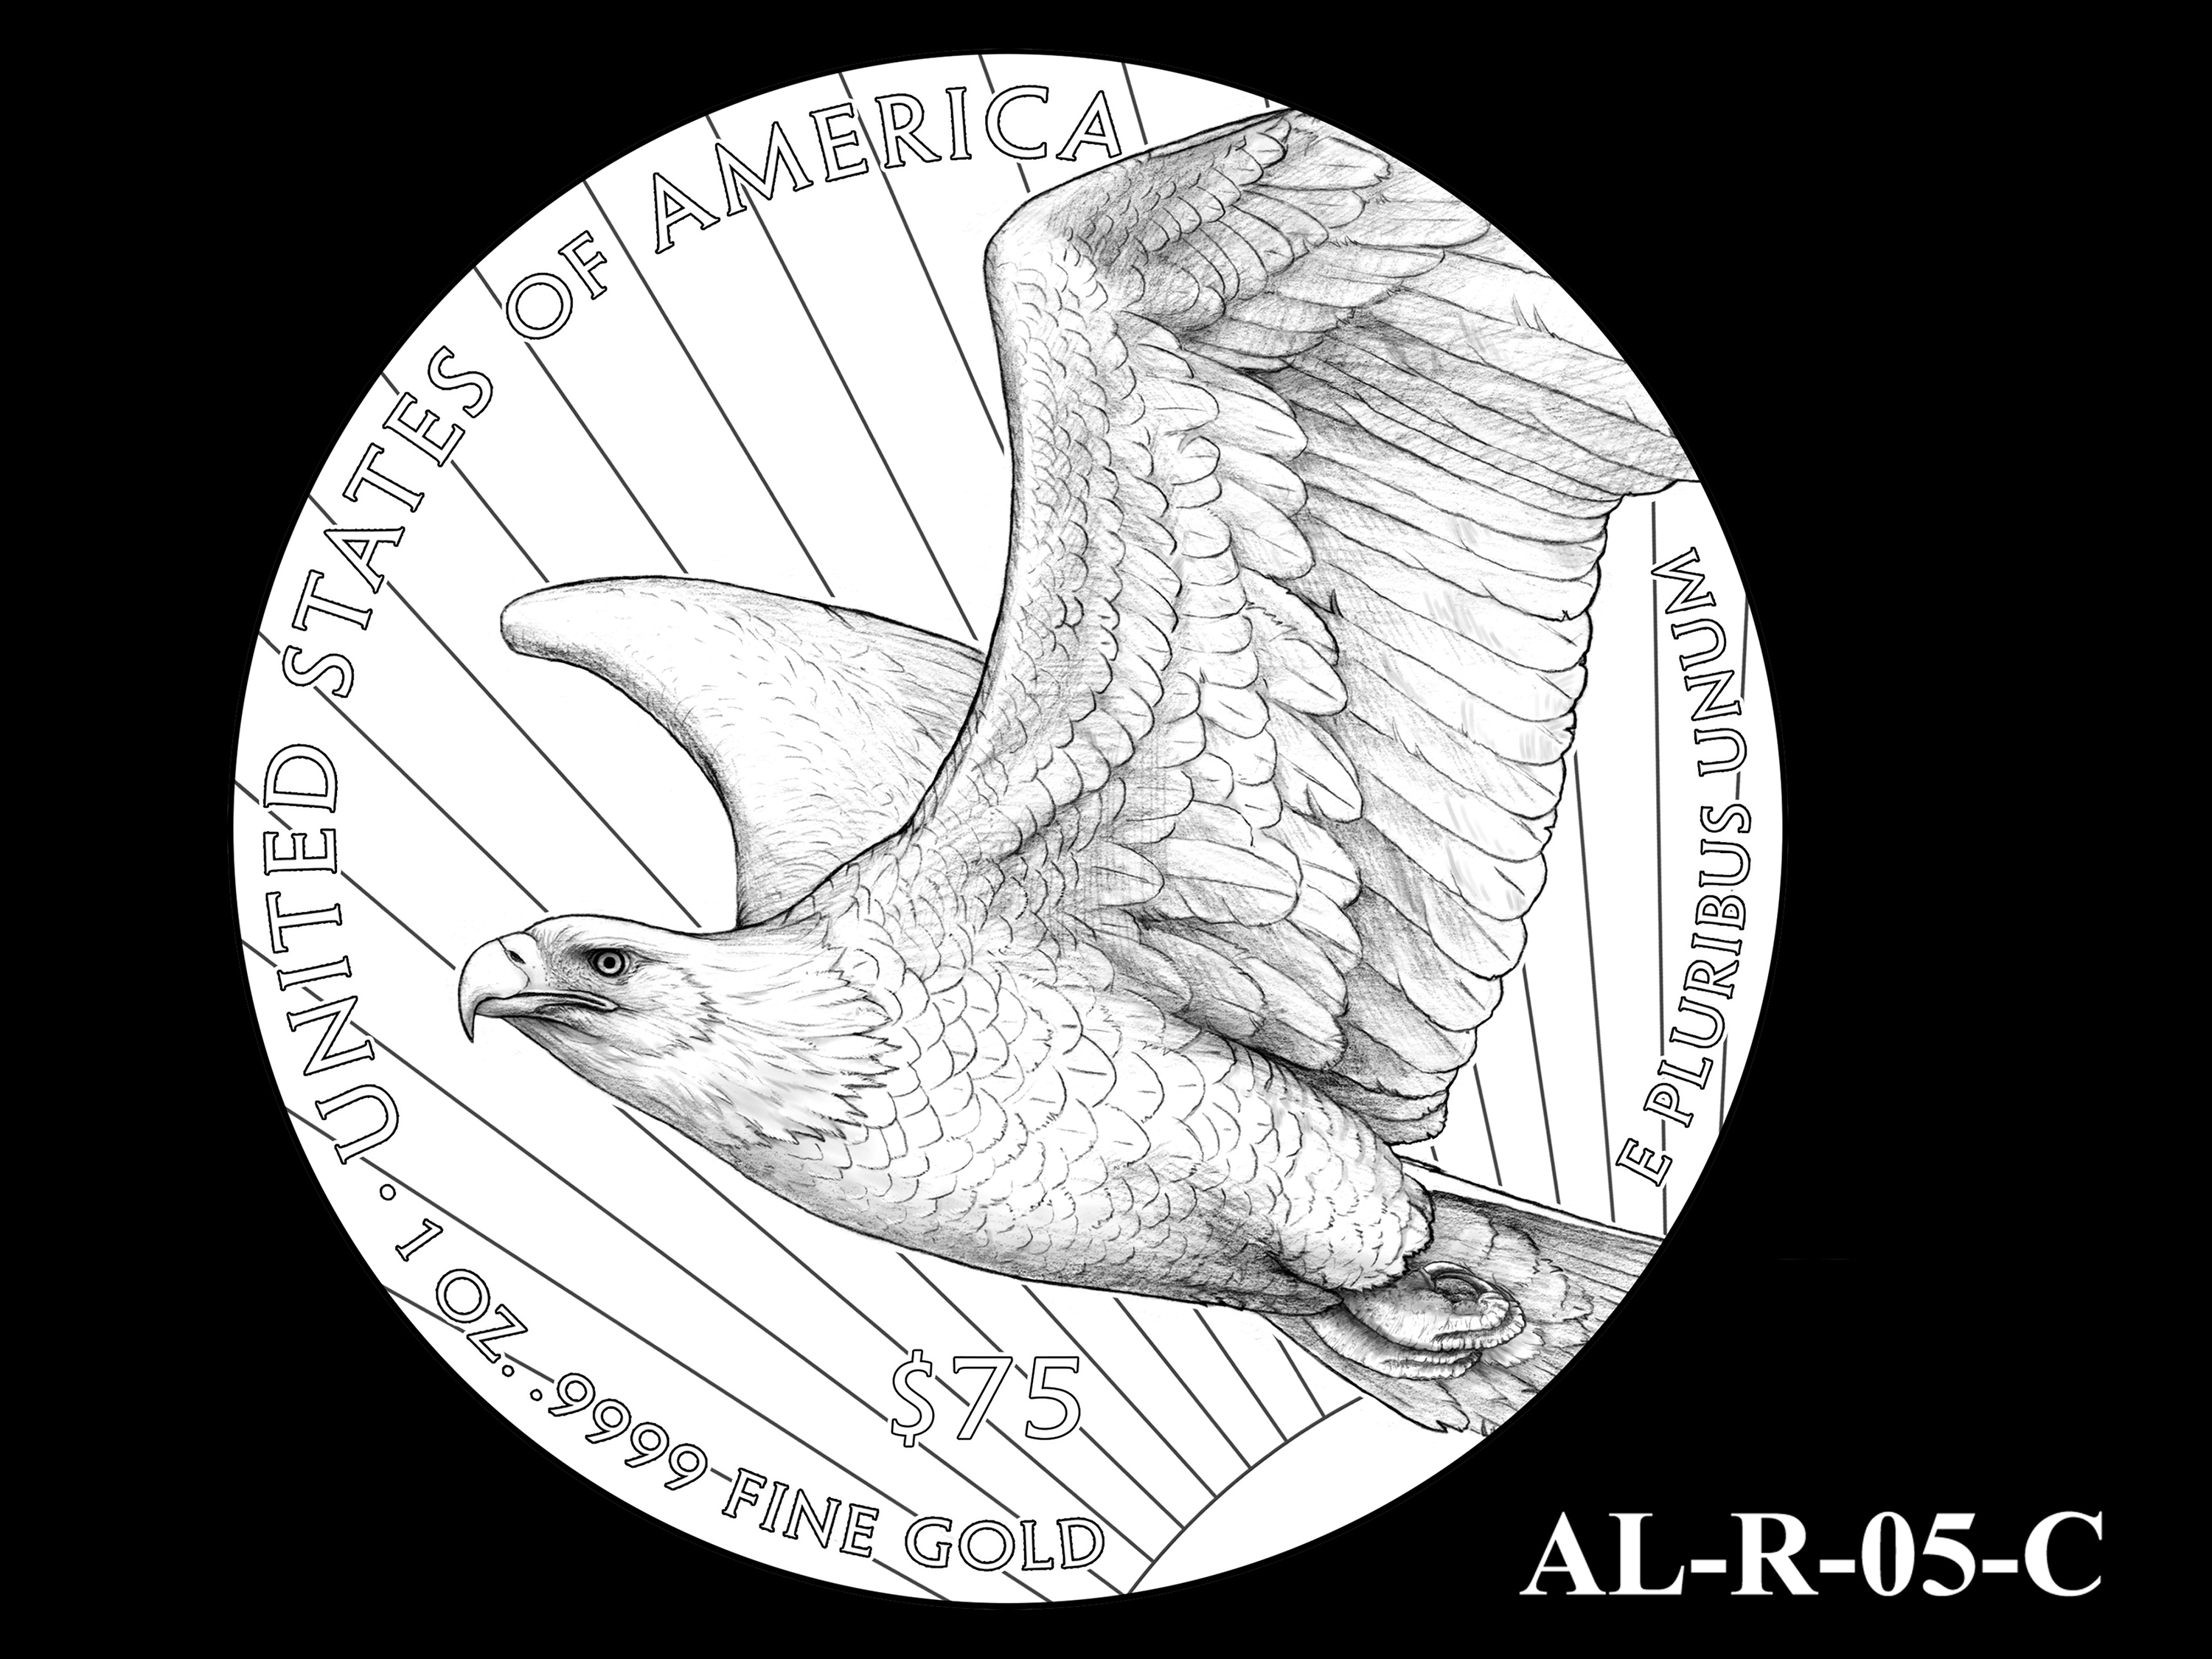 AL-R-05-C -- 2021 American Liberty Gold Coin and Silver Medal Program - Reverse